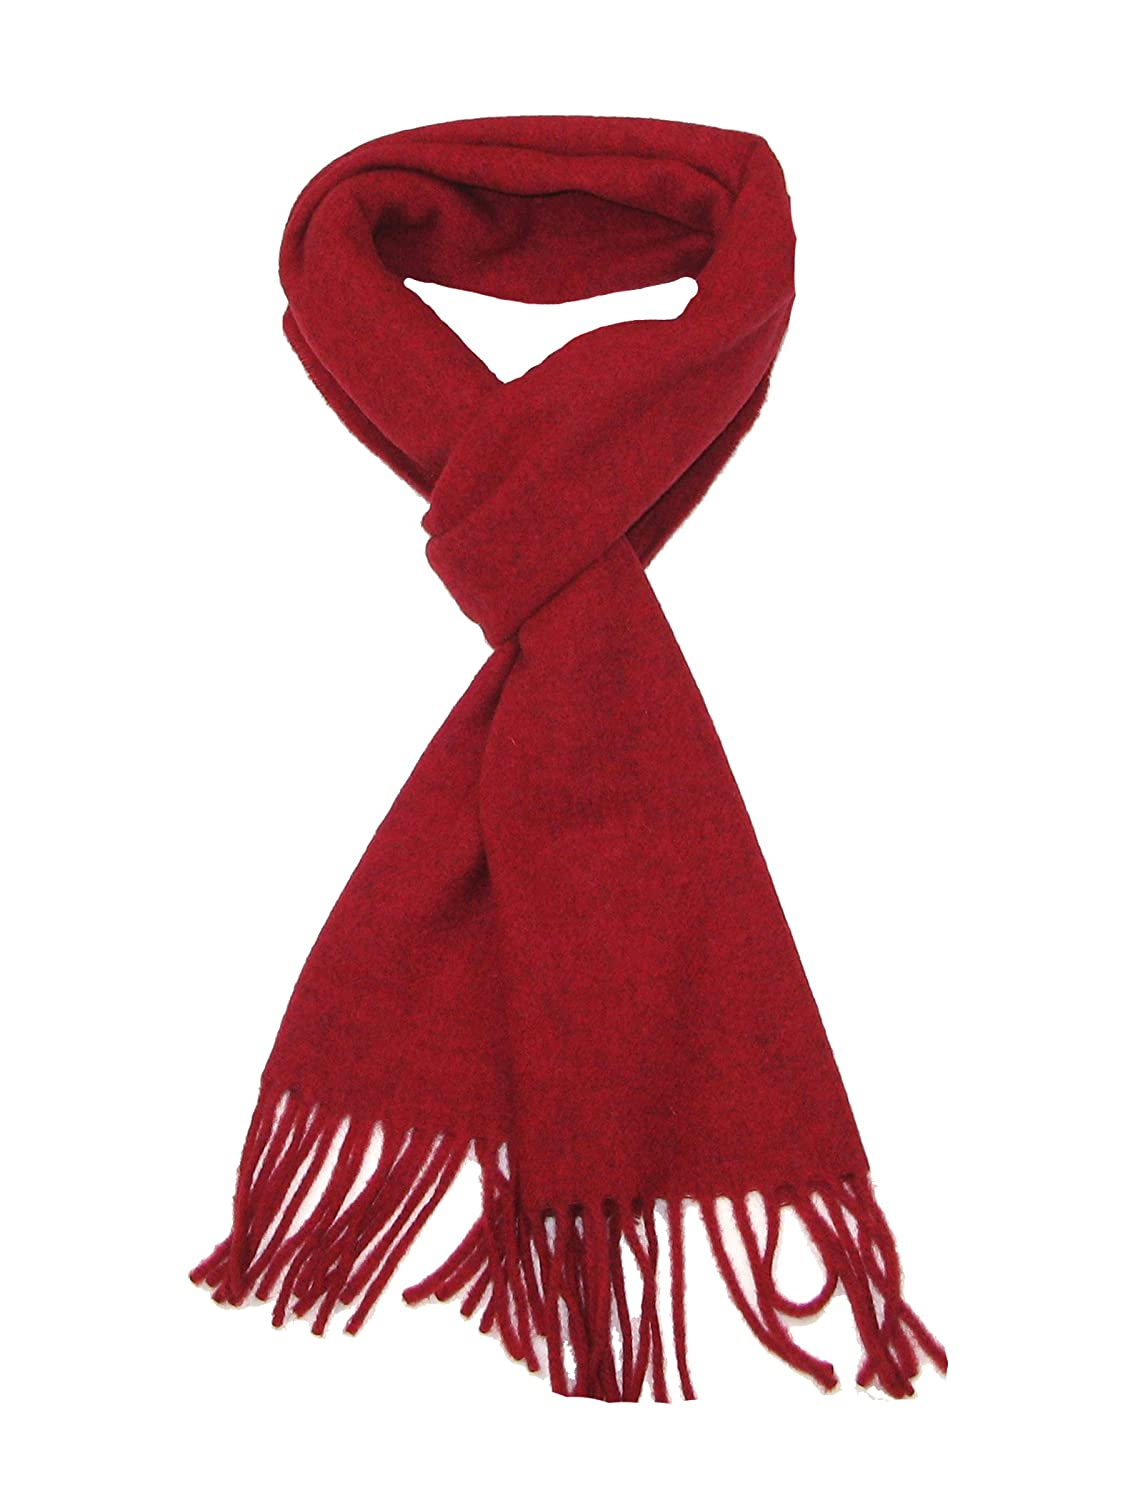 Lovarzi Luxurious Wool Scarf for Men and Women - Winter scarves - Made in Italy